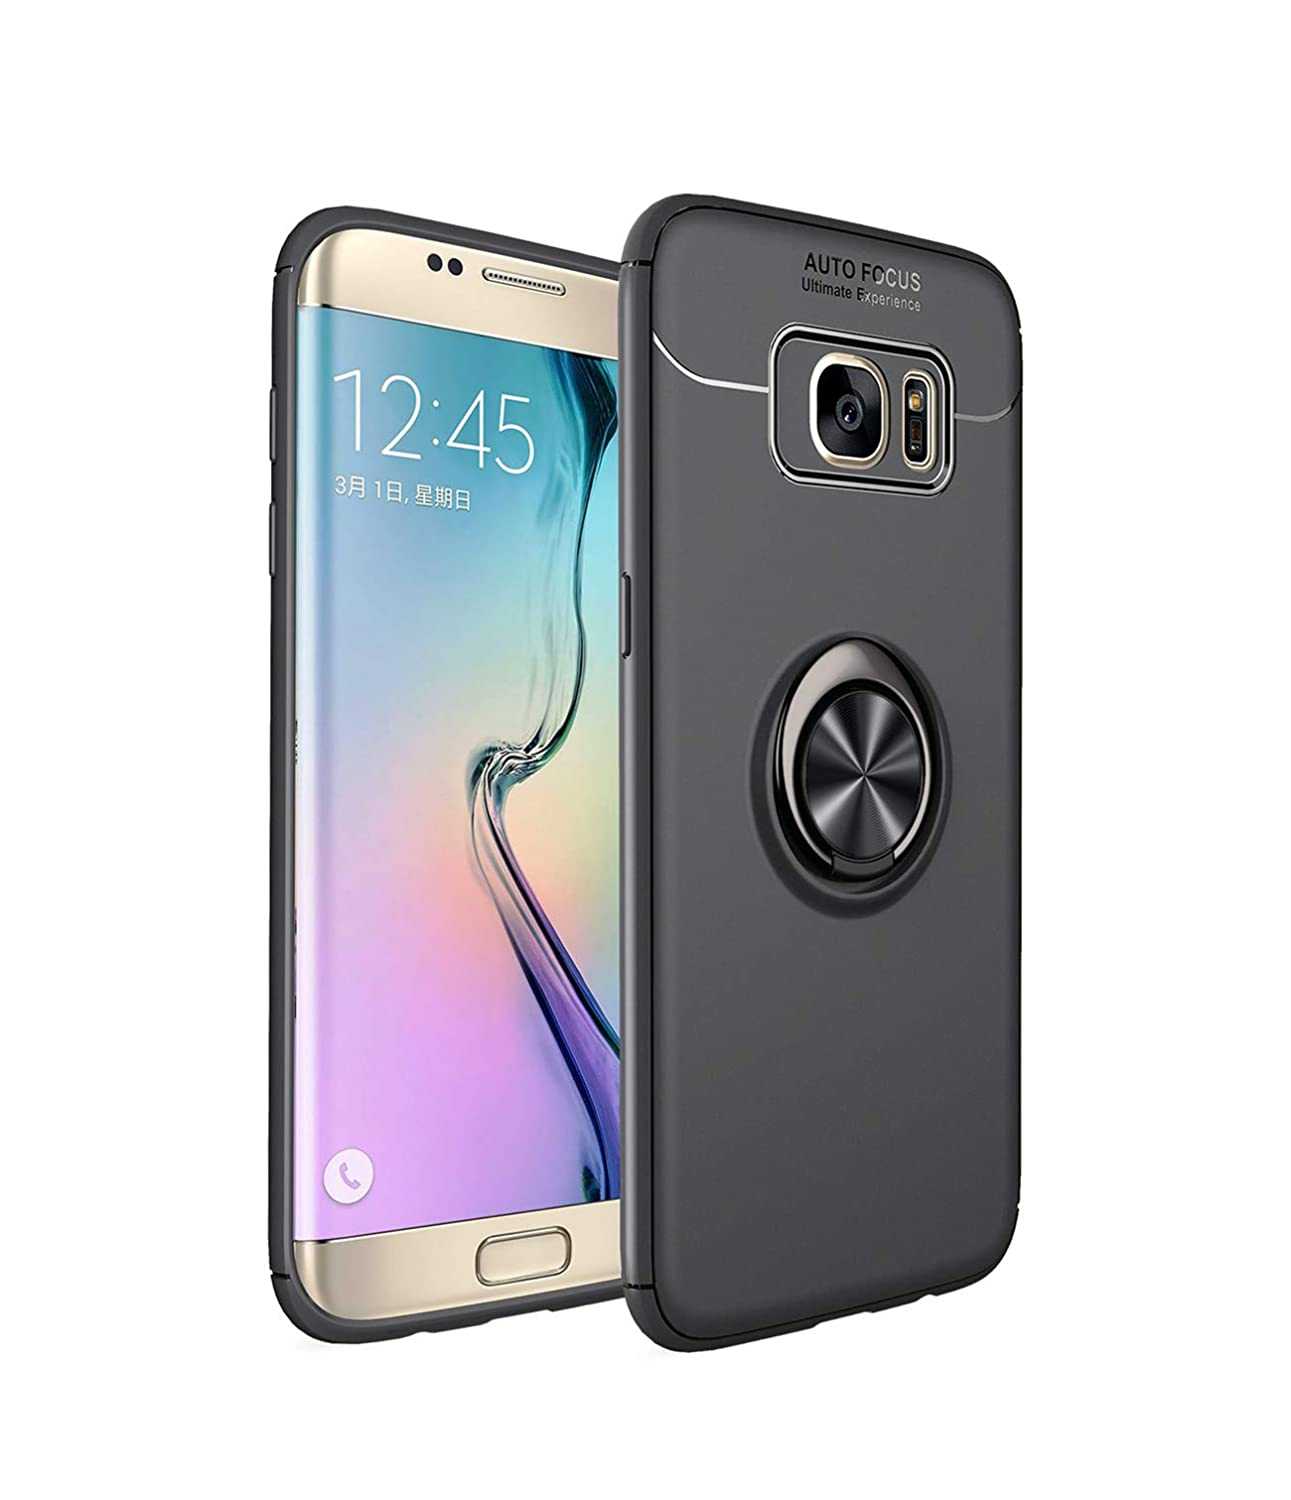 Heavy Armor Galaxy S7 Edge Case Ring Holder Kickstand Magnetic Base Dual Layer Car Mount Rotable Dual Layer Protective Hard Shell PC Bumper Galaxy S7 Edge (1, Galaxy S7 Edge)